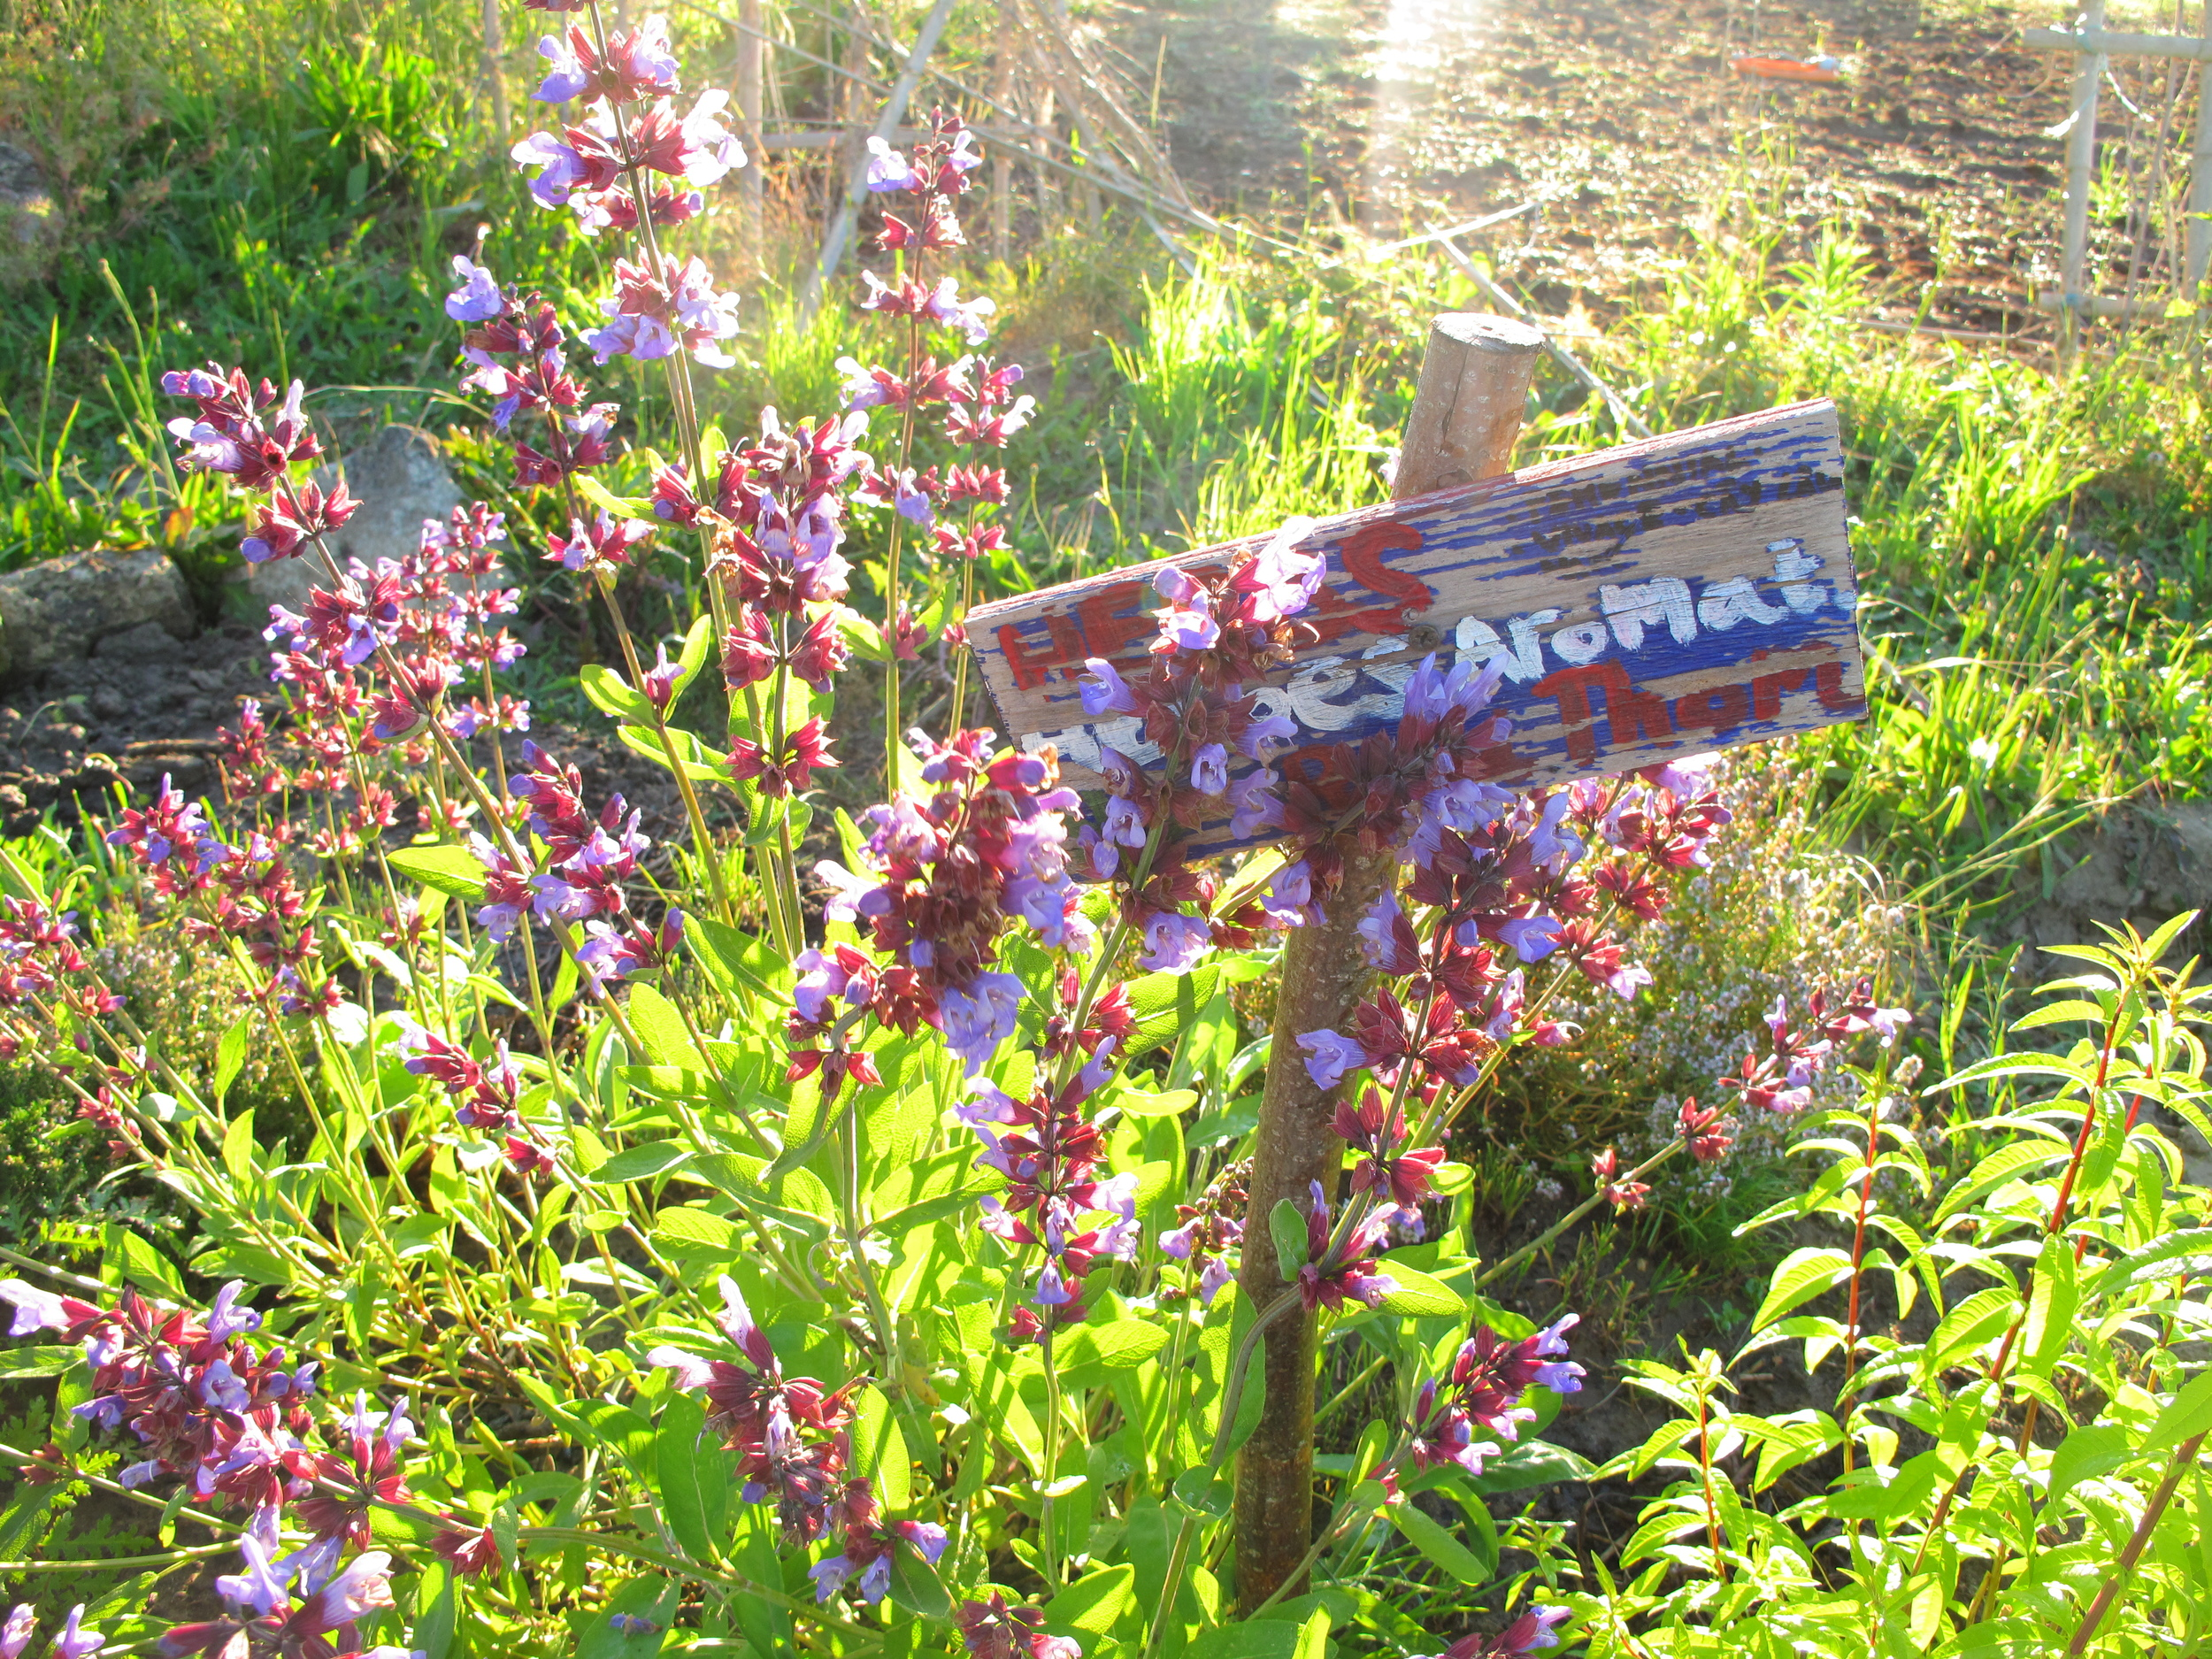 Plants in the garden of plum village in the morning light